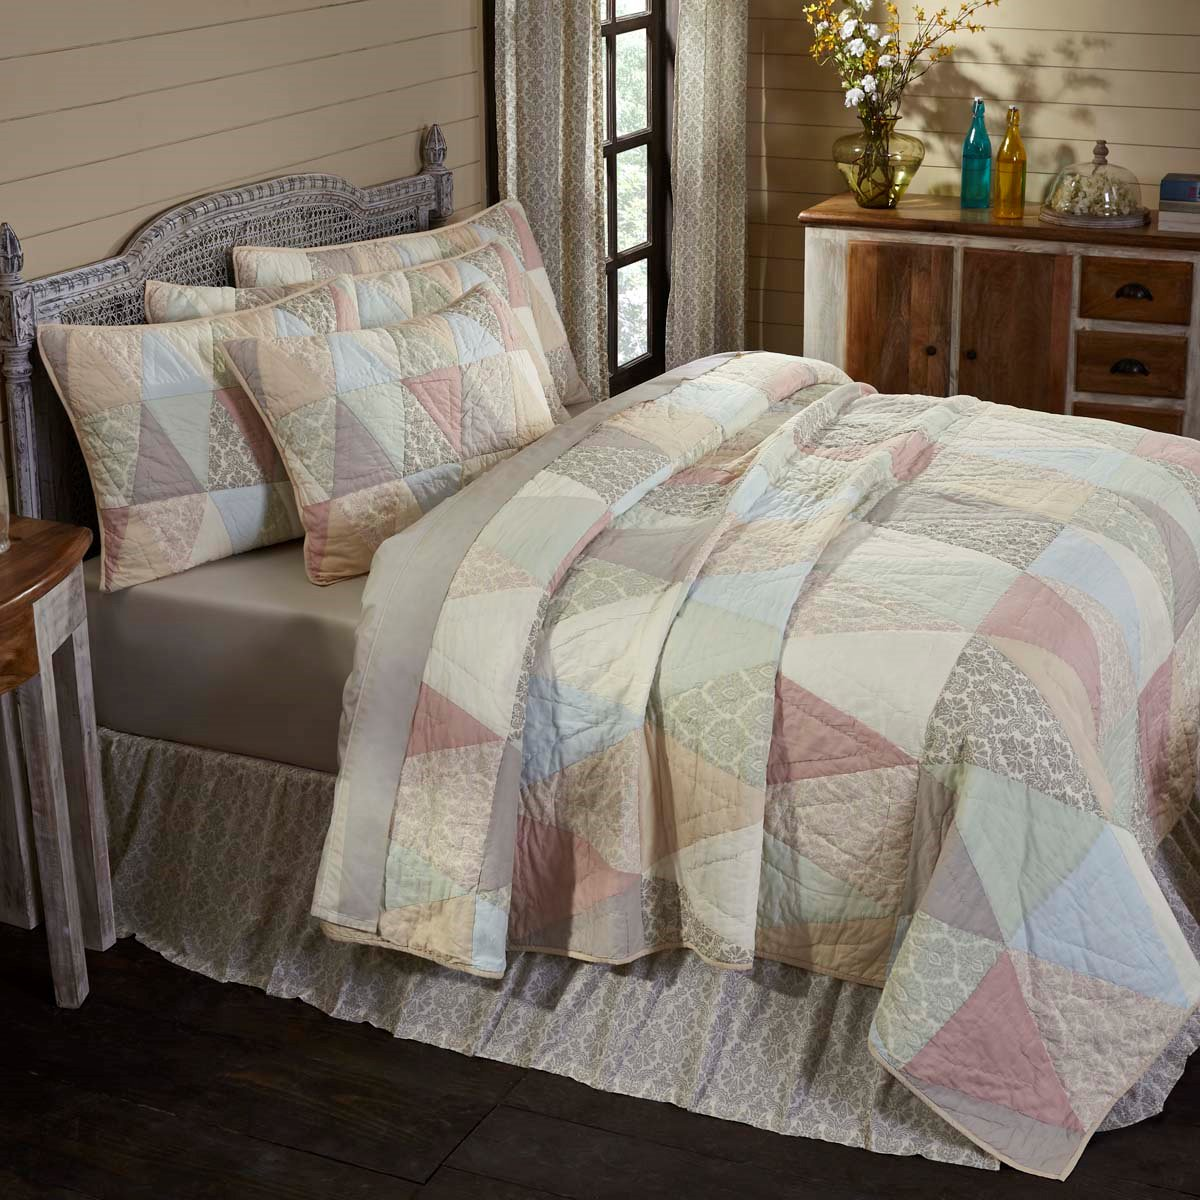 Ava Twin Quilt 86x68